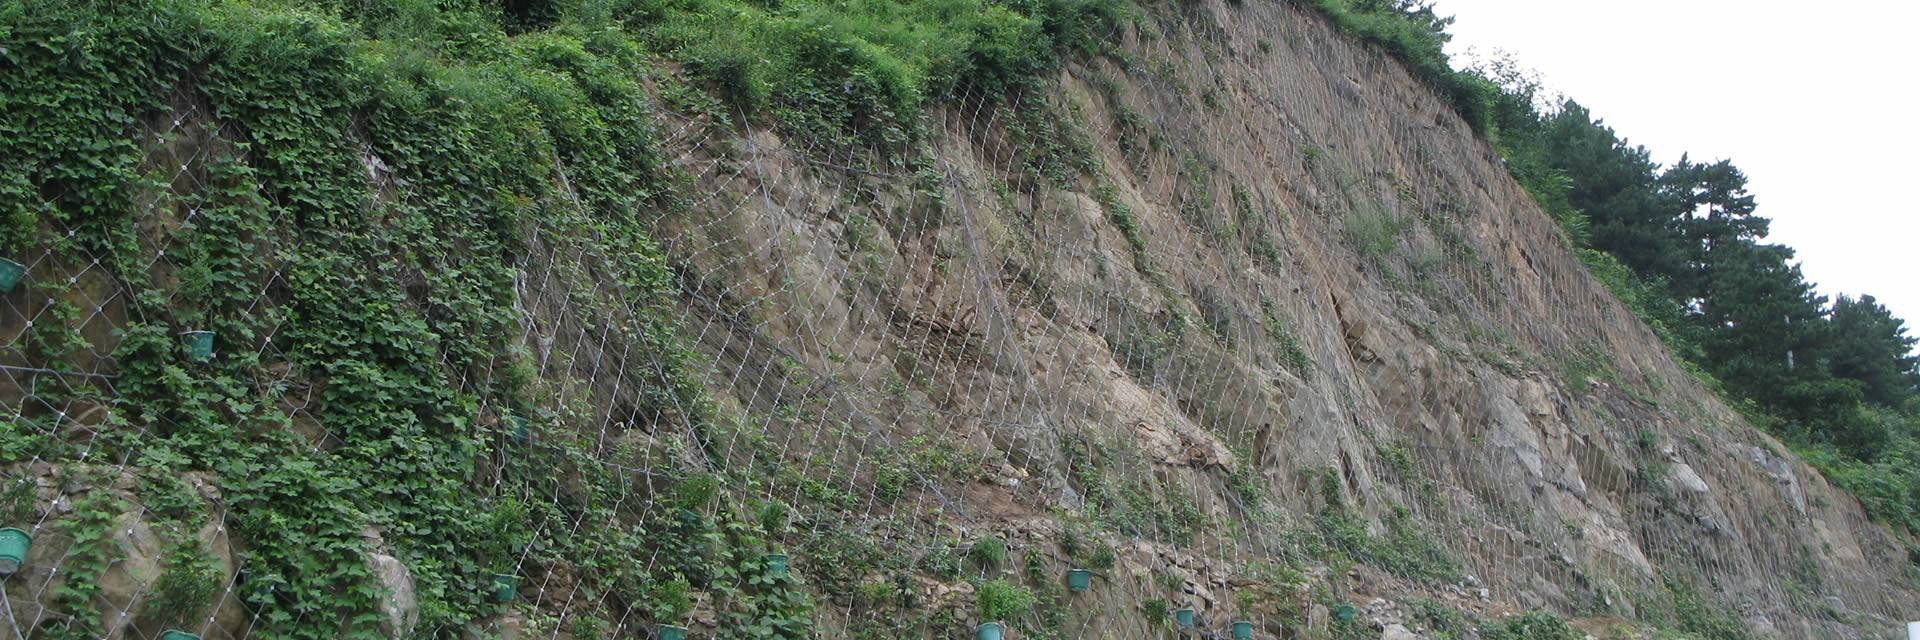 Mountains on the two side of the road are covered by the active rockfall barrier system.